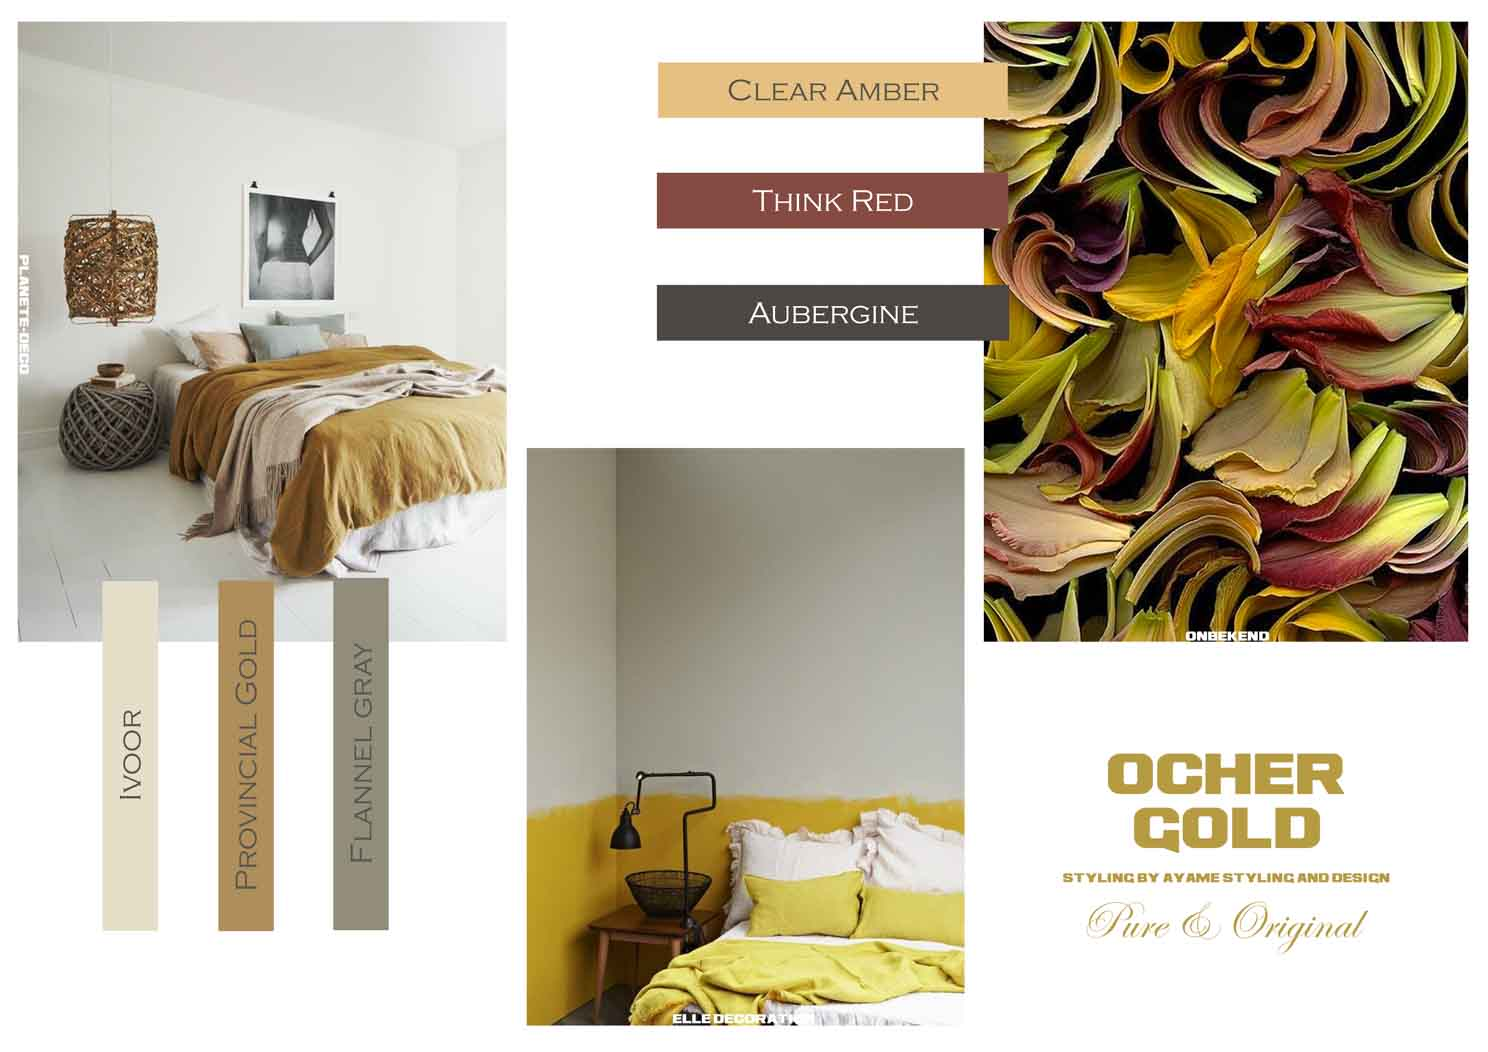 Ochre gold mood board with yellows, beiges, and reds